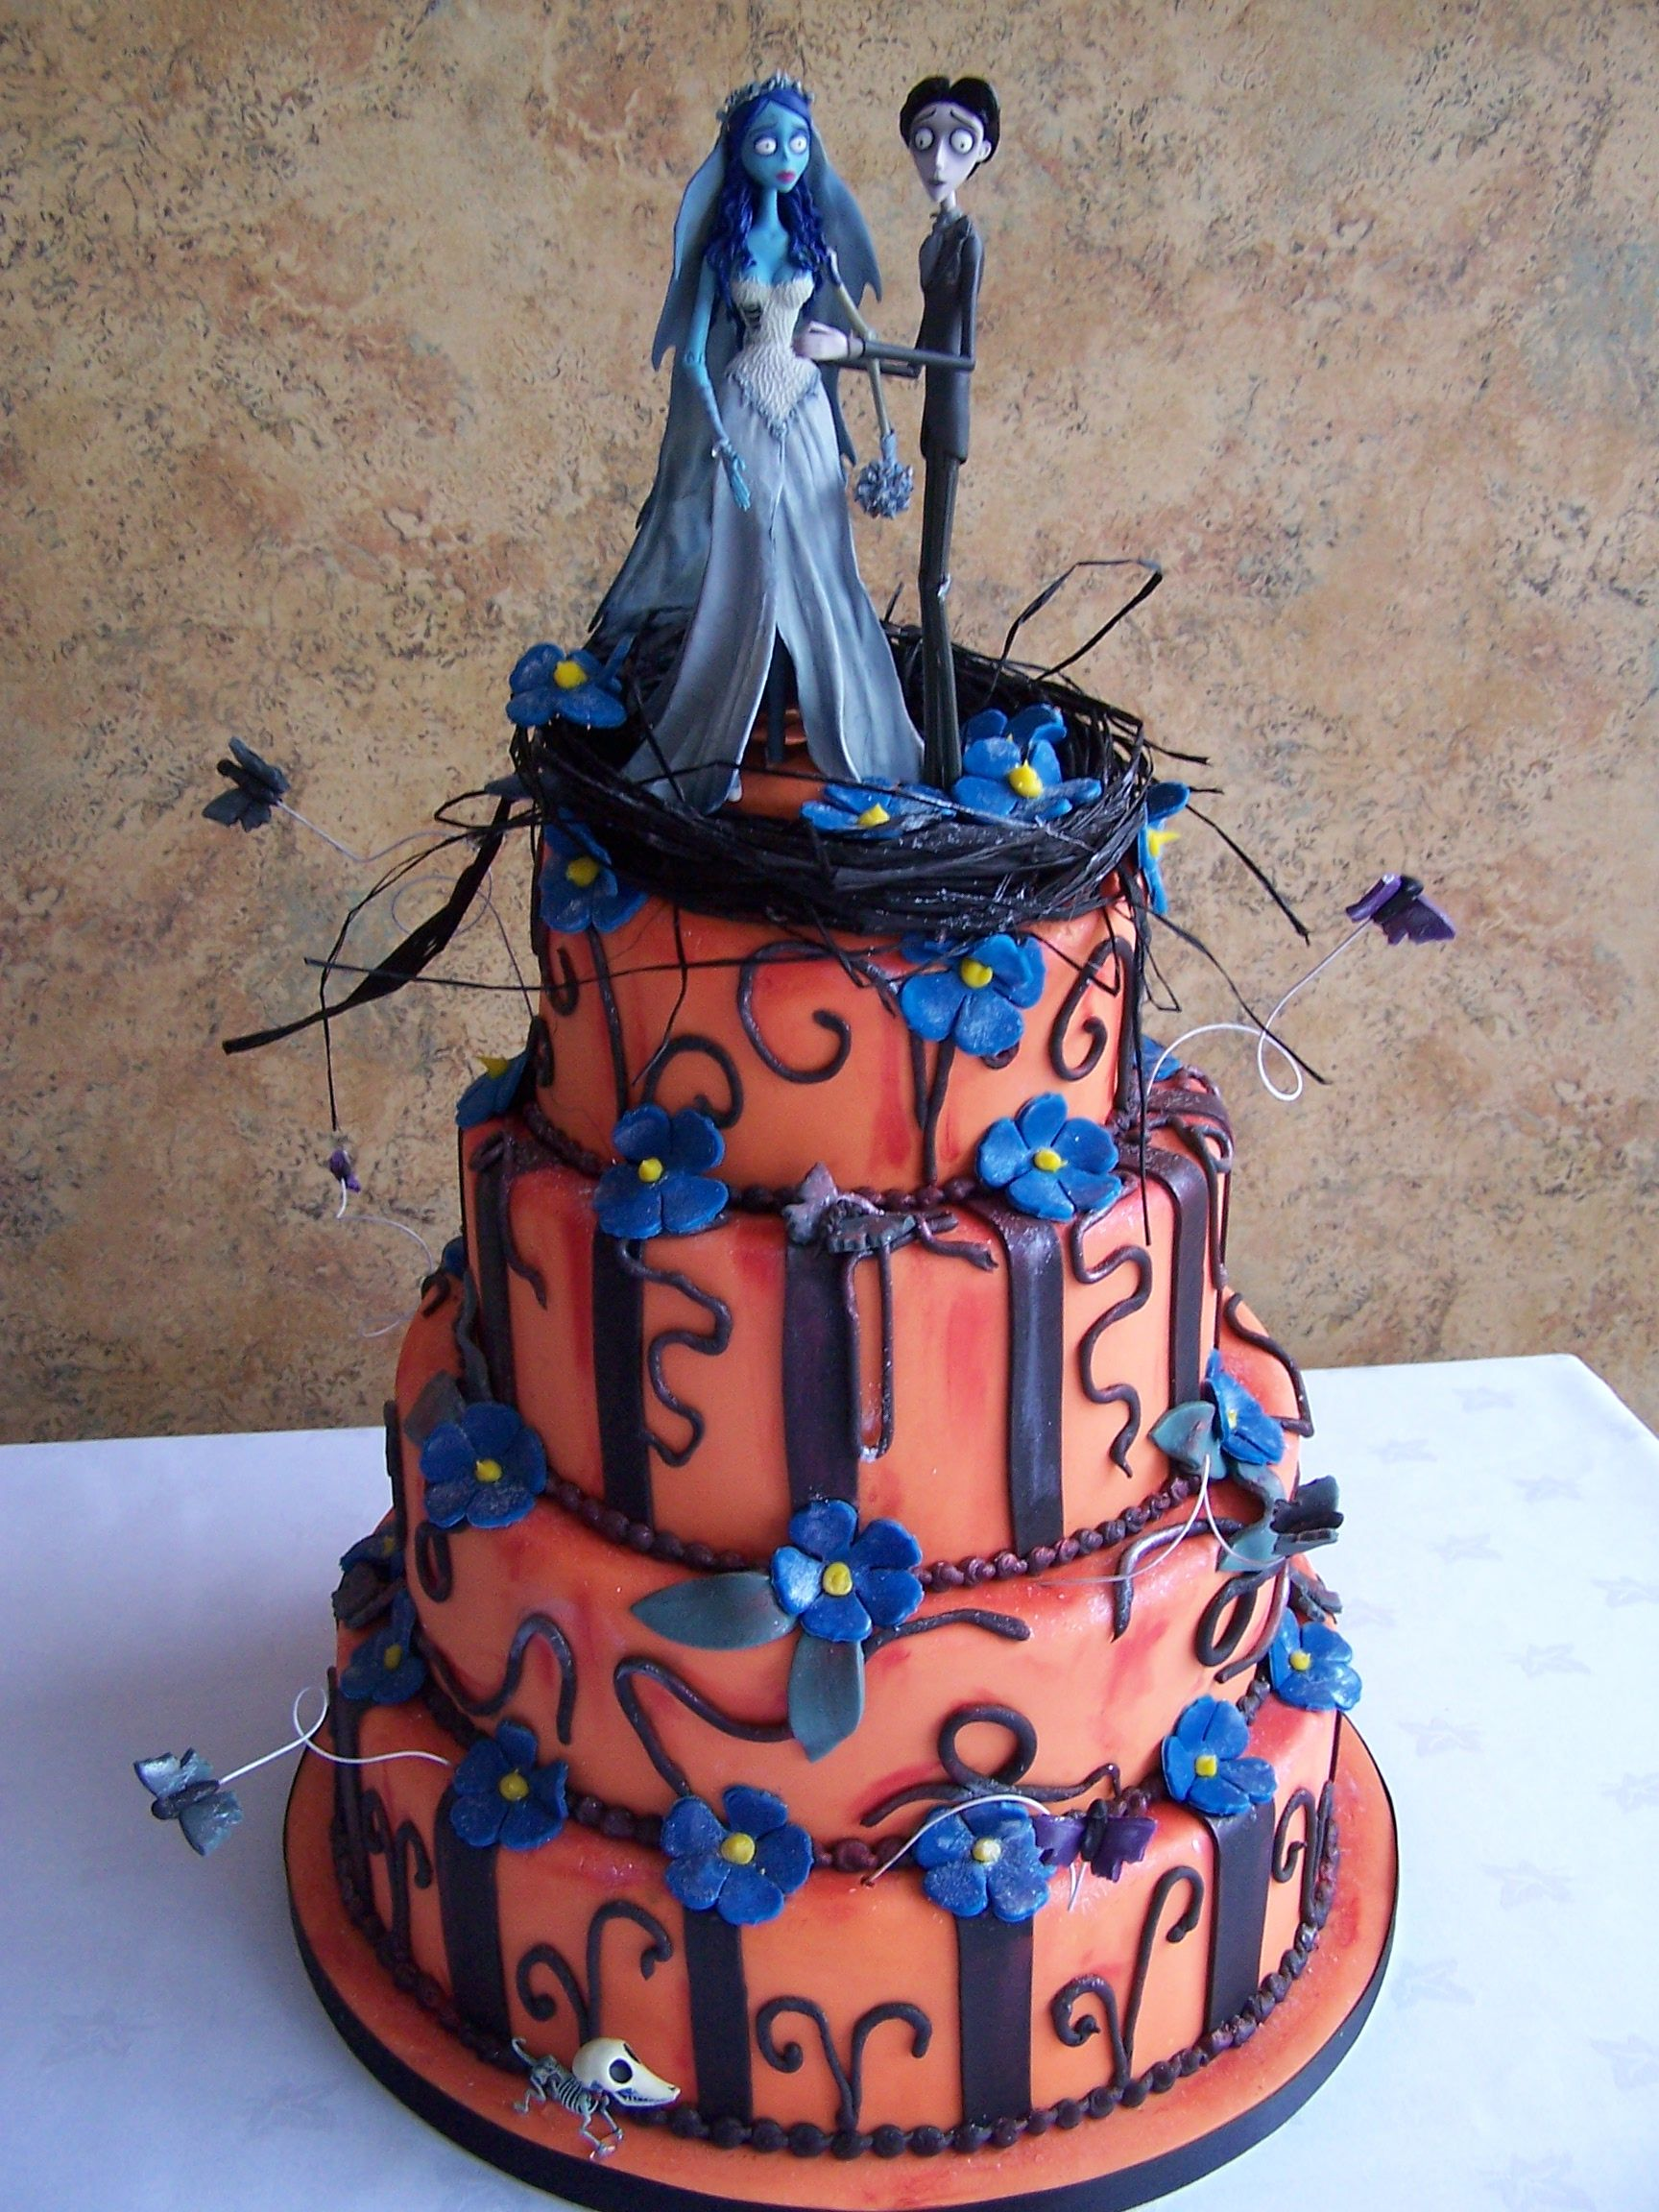 Cakes images wedding cake hd wallpaper and background photos - Wedding Or Halloween Cake Idea